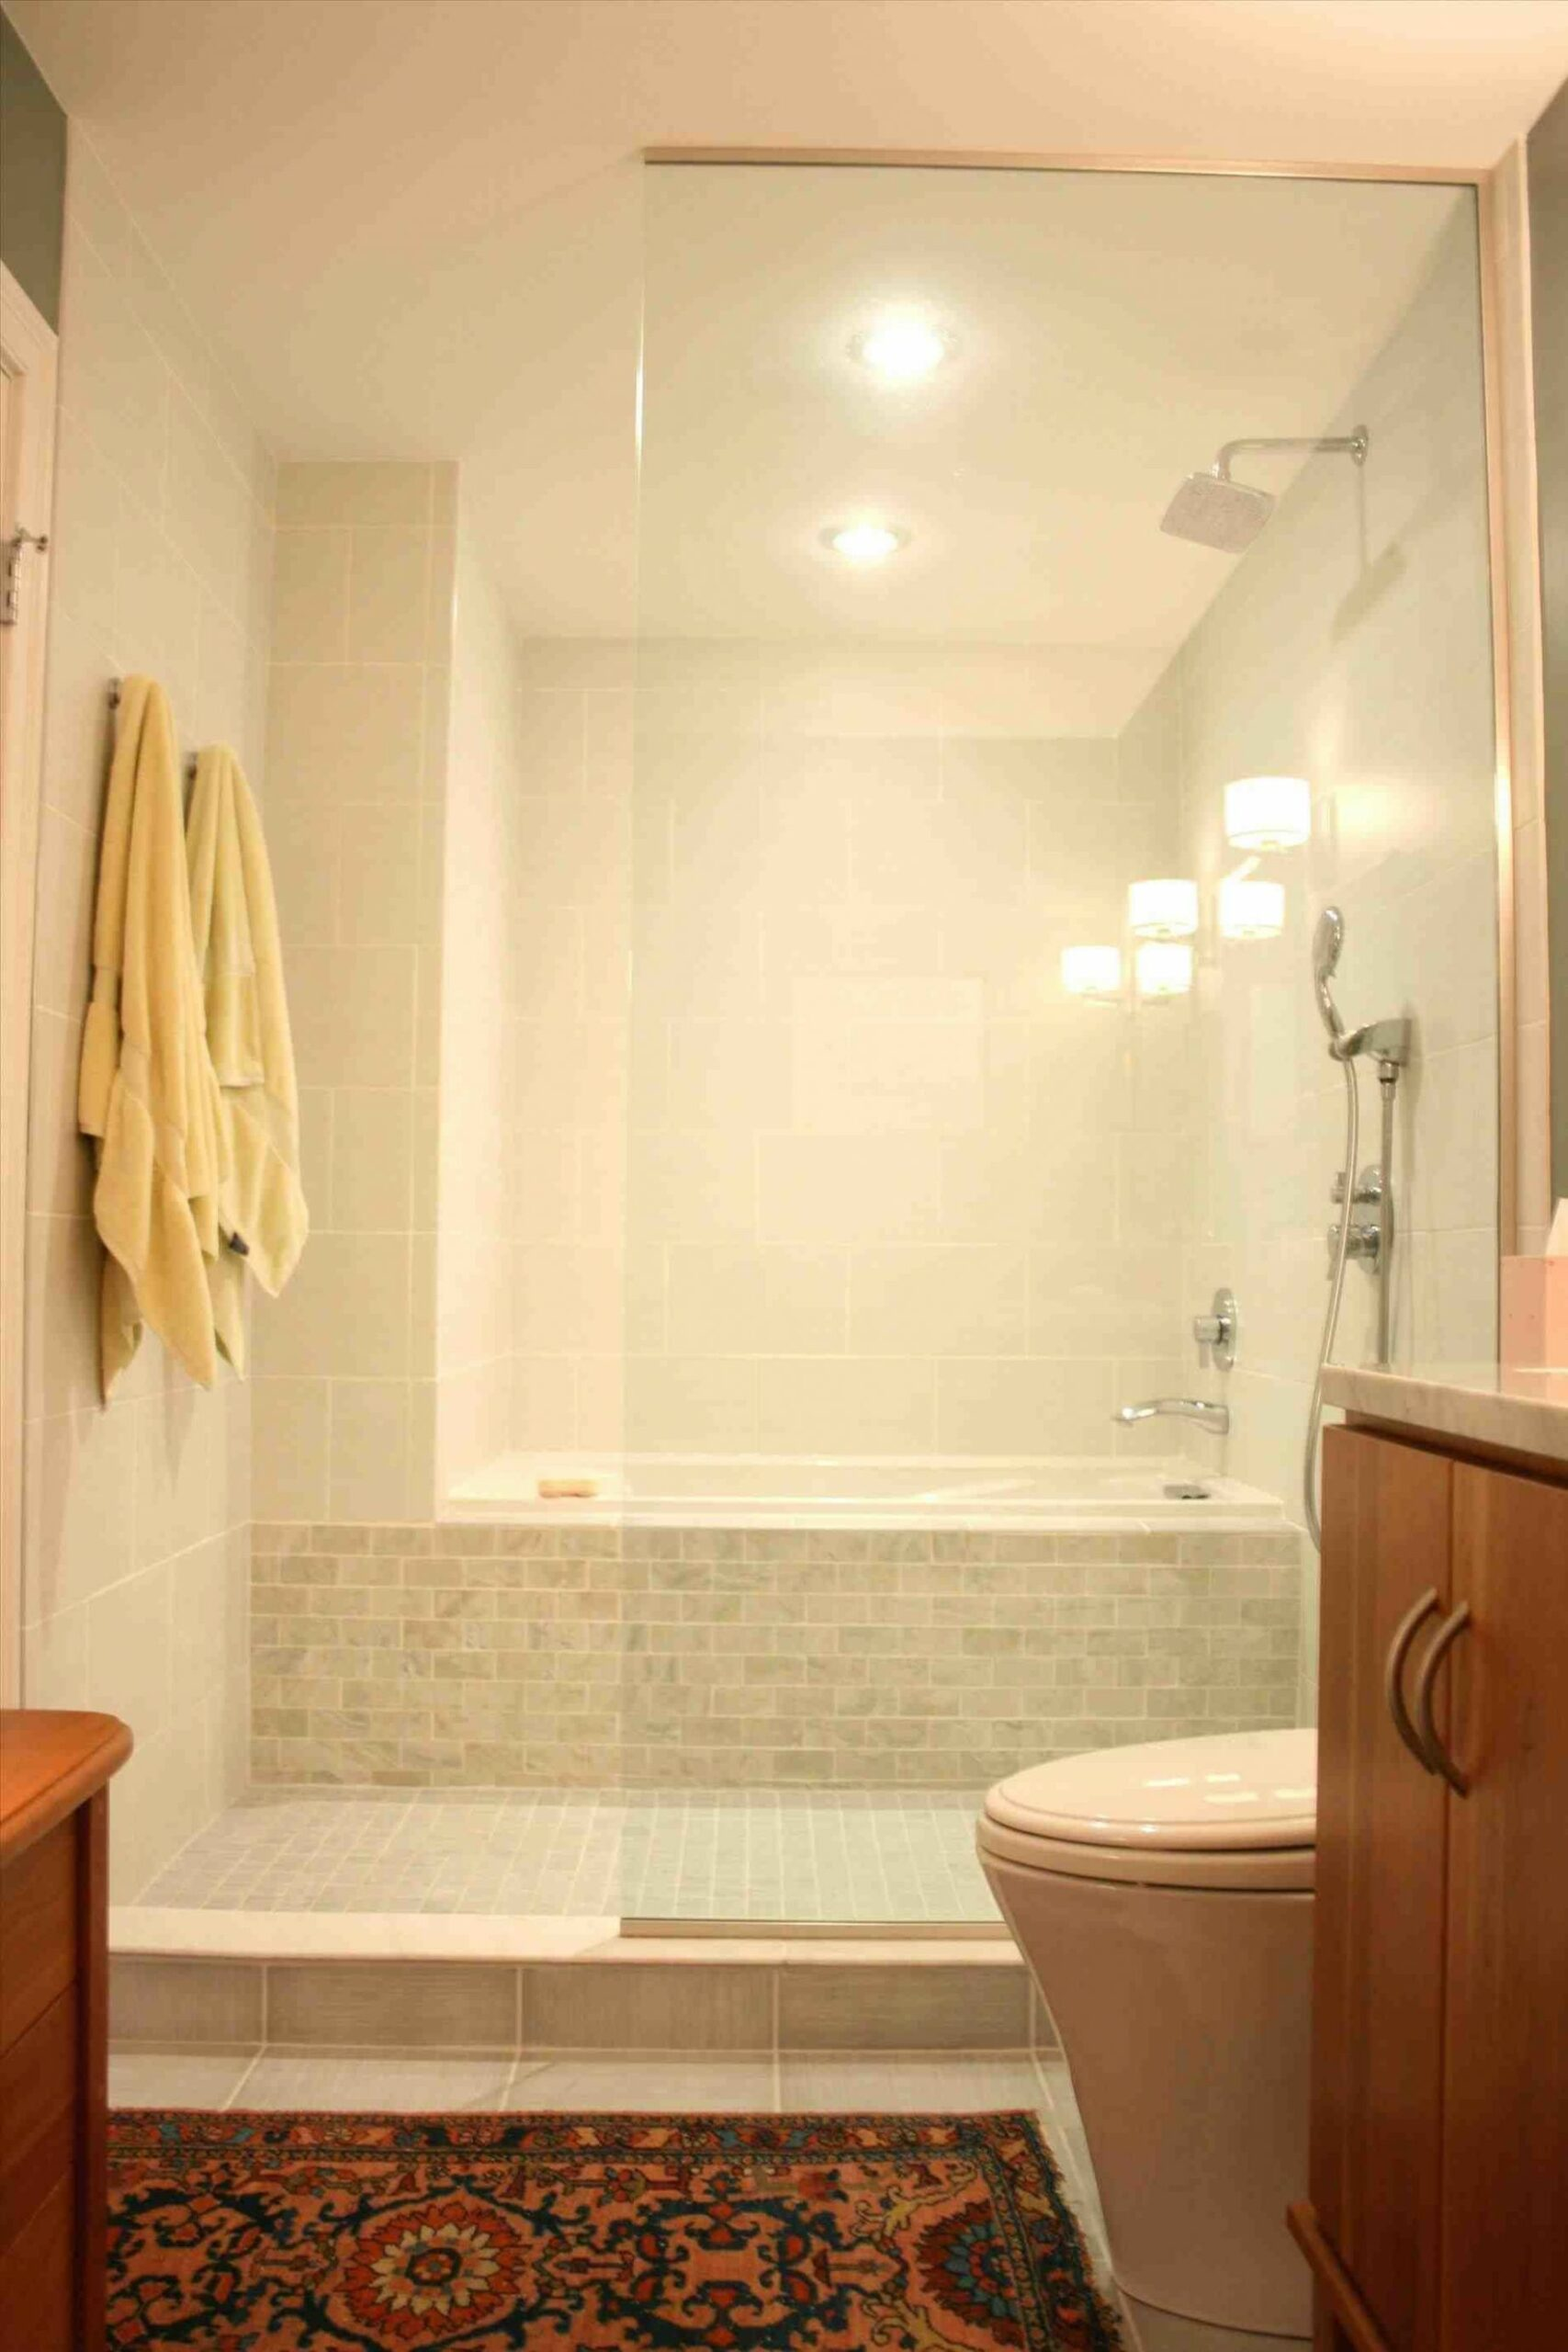 This bath shower combo lowes - lowes shower stall | lowes tub ..